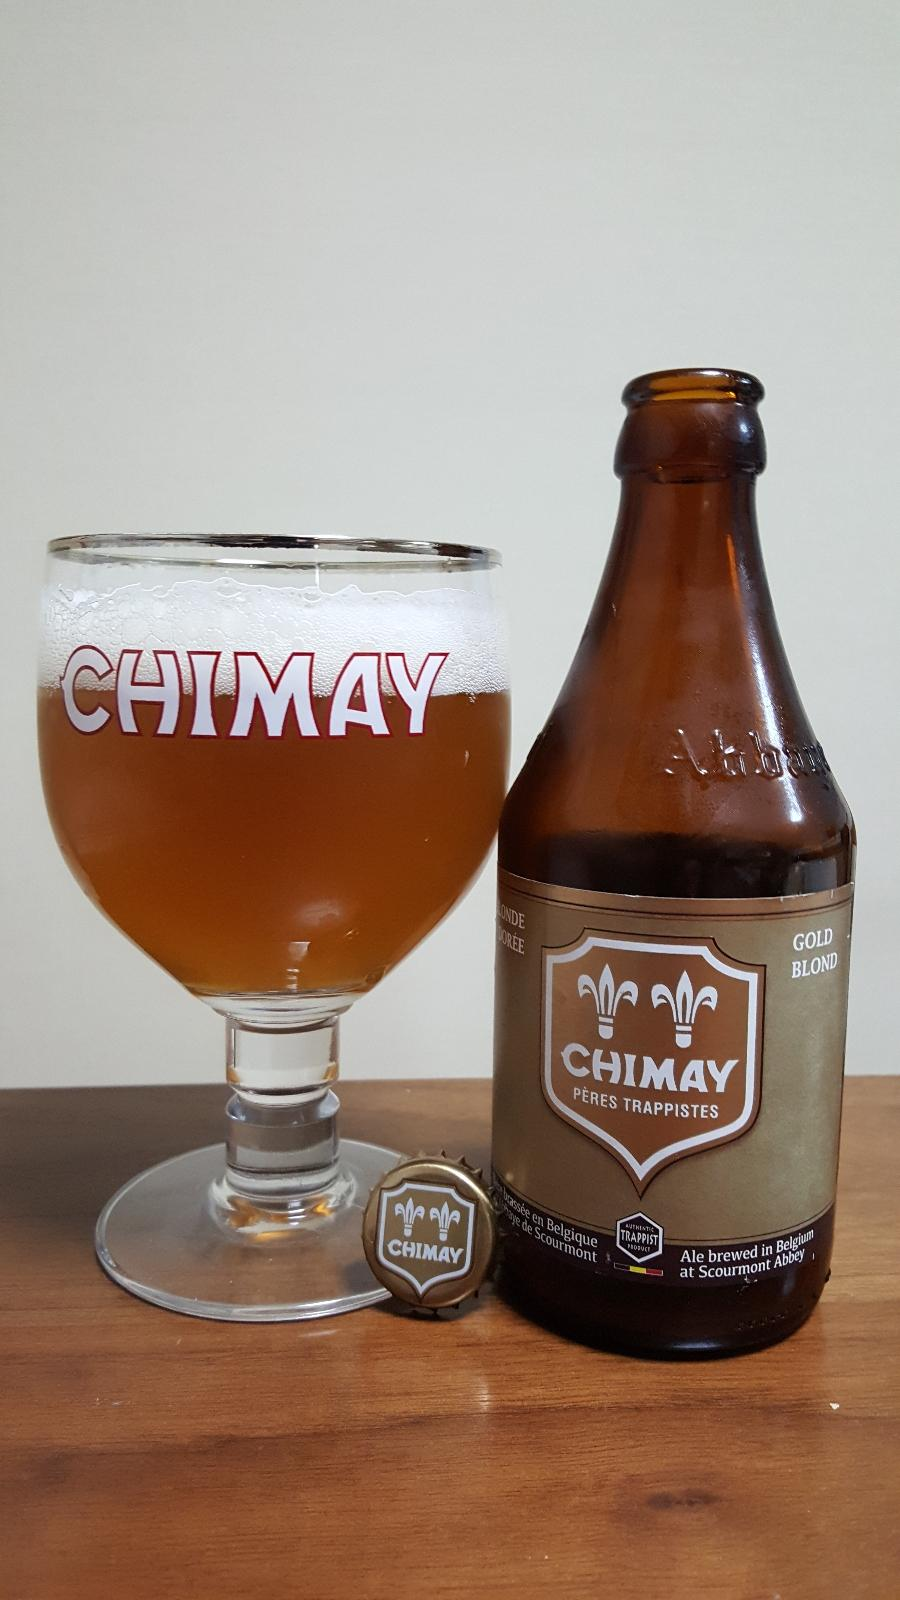 Chimay Pères Trappistes (Gold)